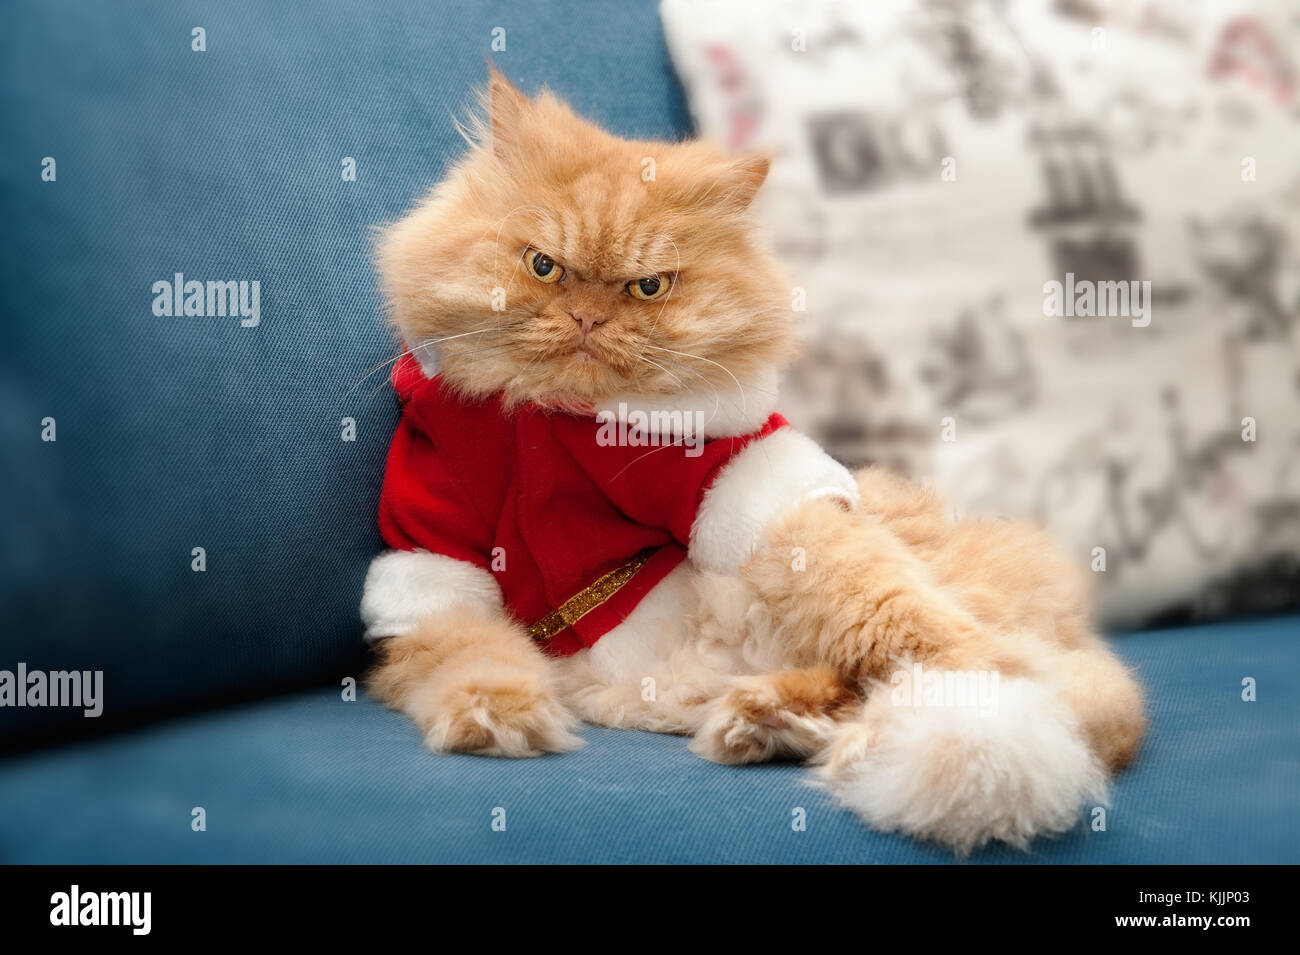 Persian cat with Santa Claus costume sitting on couch - Stock Image